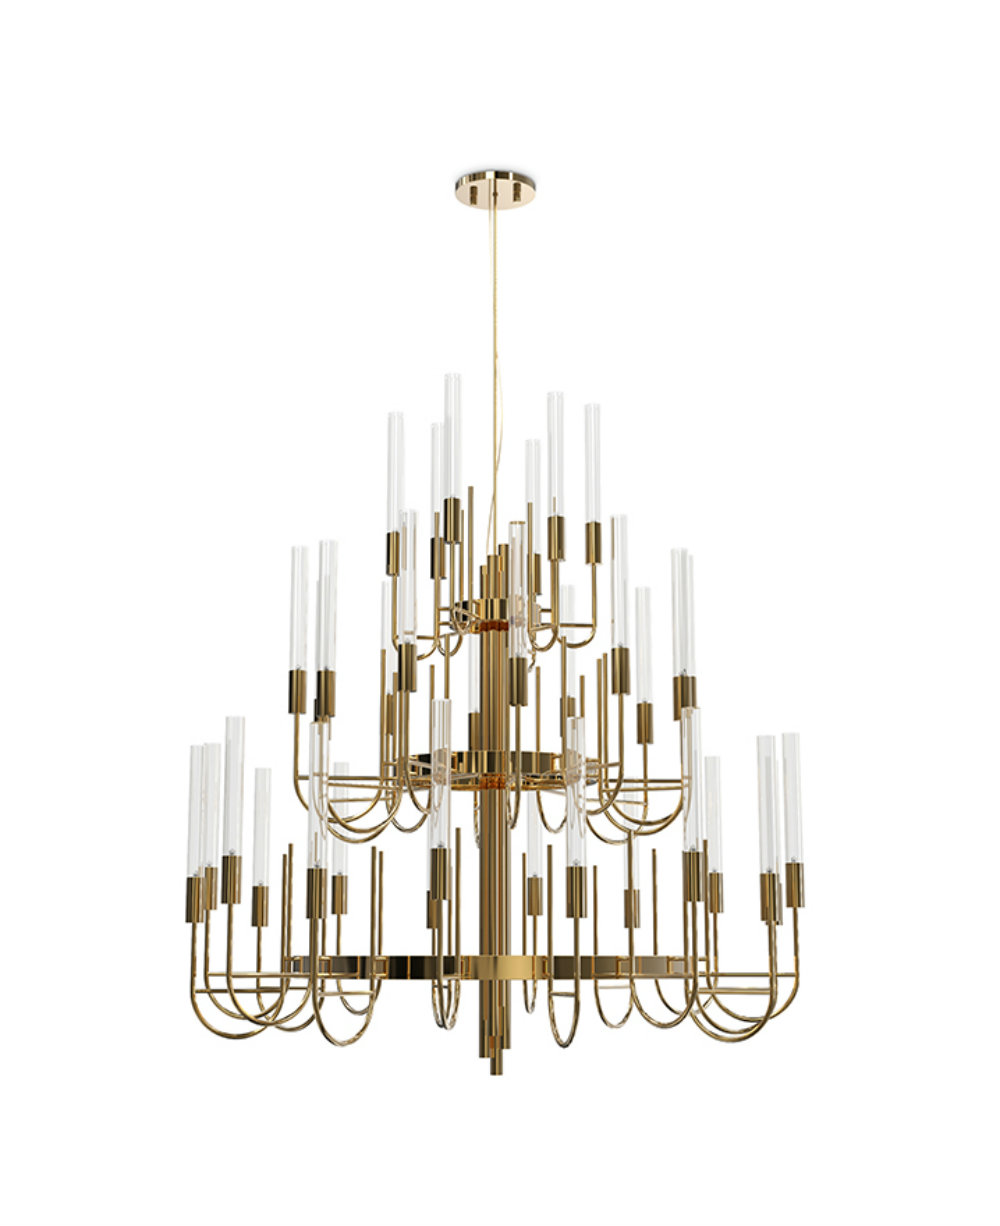 game of thrones 5 Chandeliers That Will Give A Game Of Thrones Feel To Your Home 5 Chandeliers That Will Give A Game Of Thrones Feel To Your Home 6